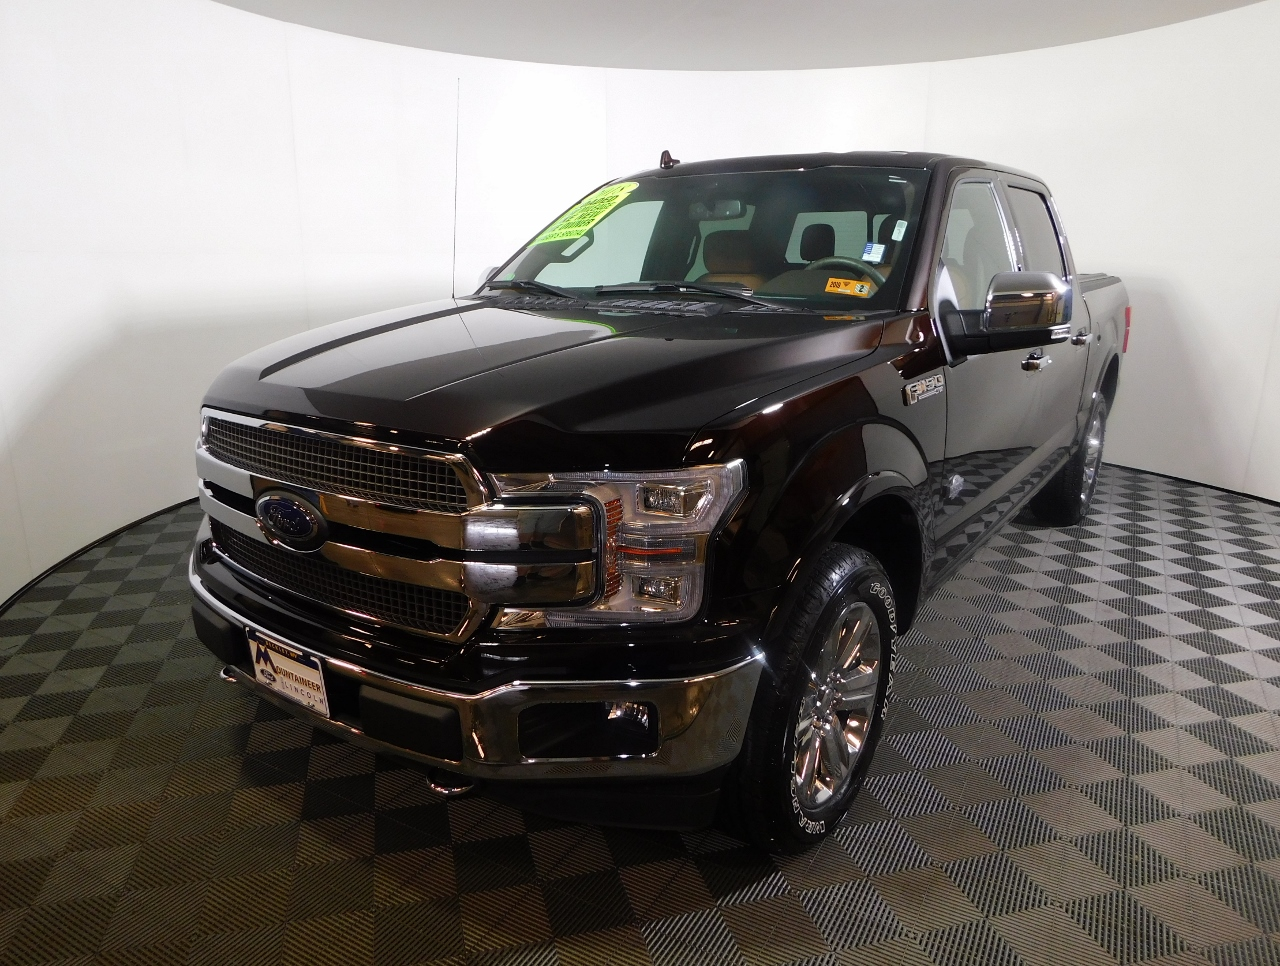 ford ford king ranch wd supercrew  box ftewegjfa mountaineer mitsubishi